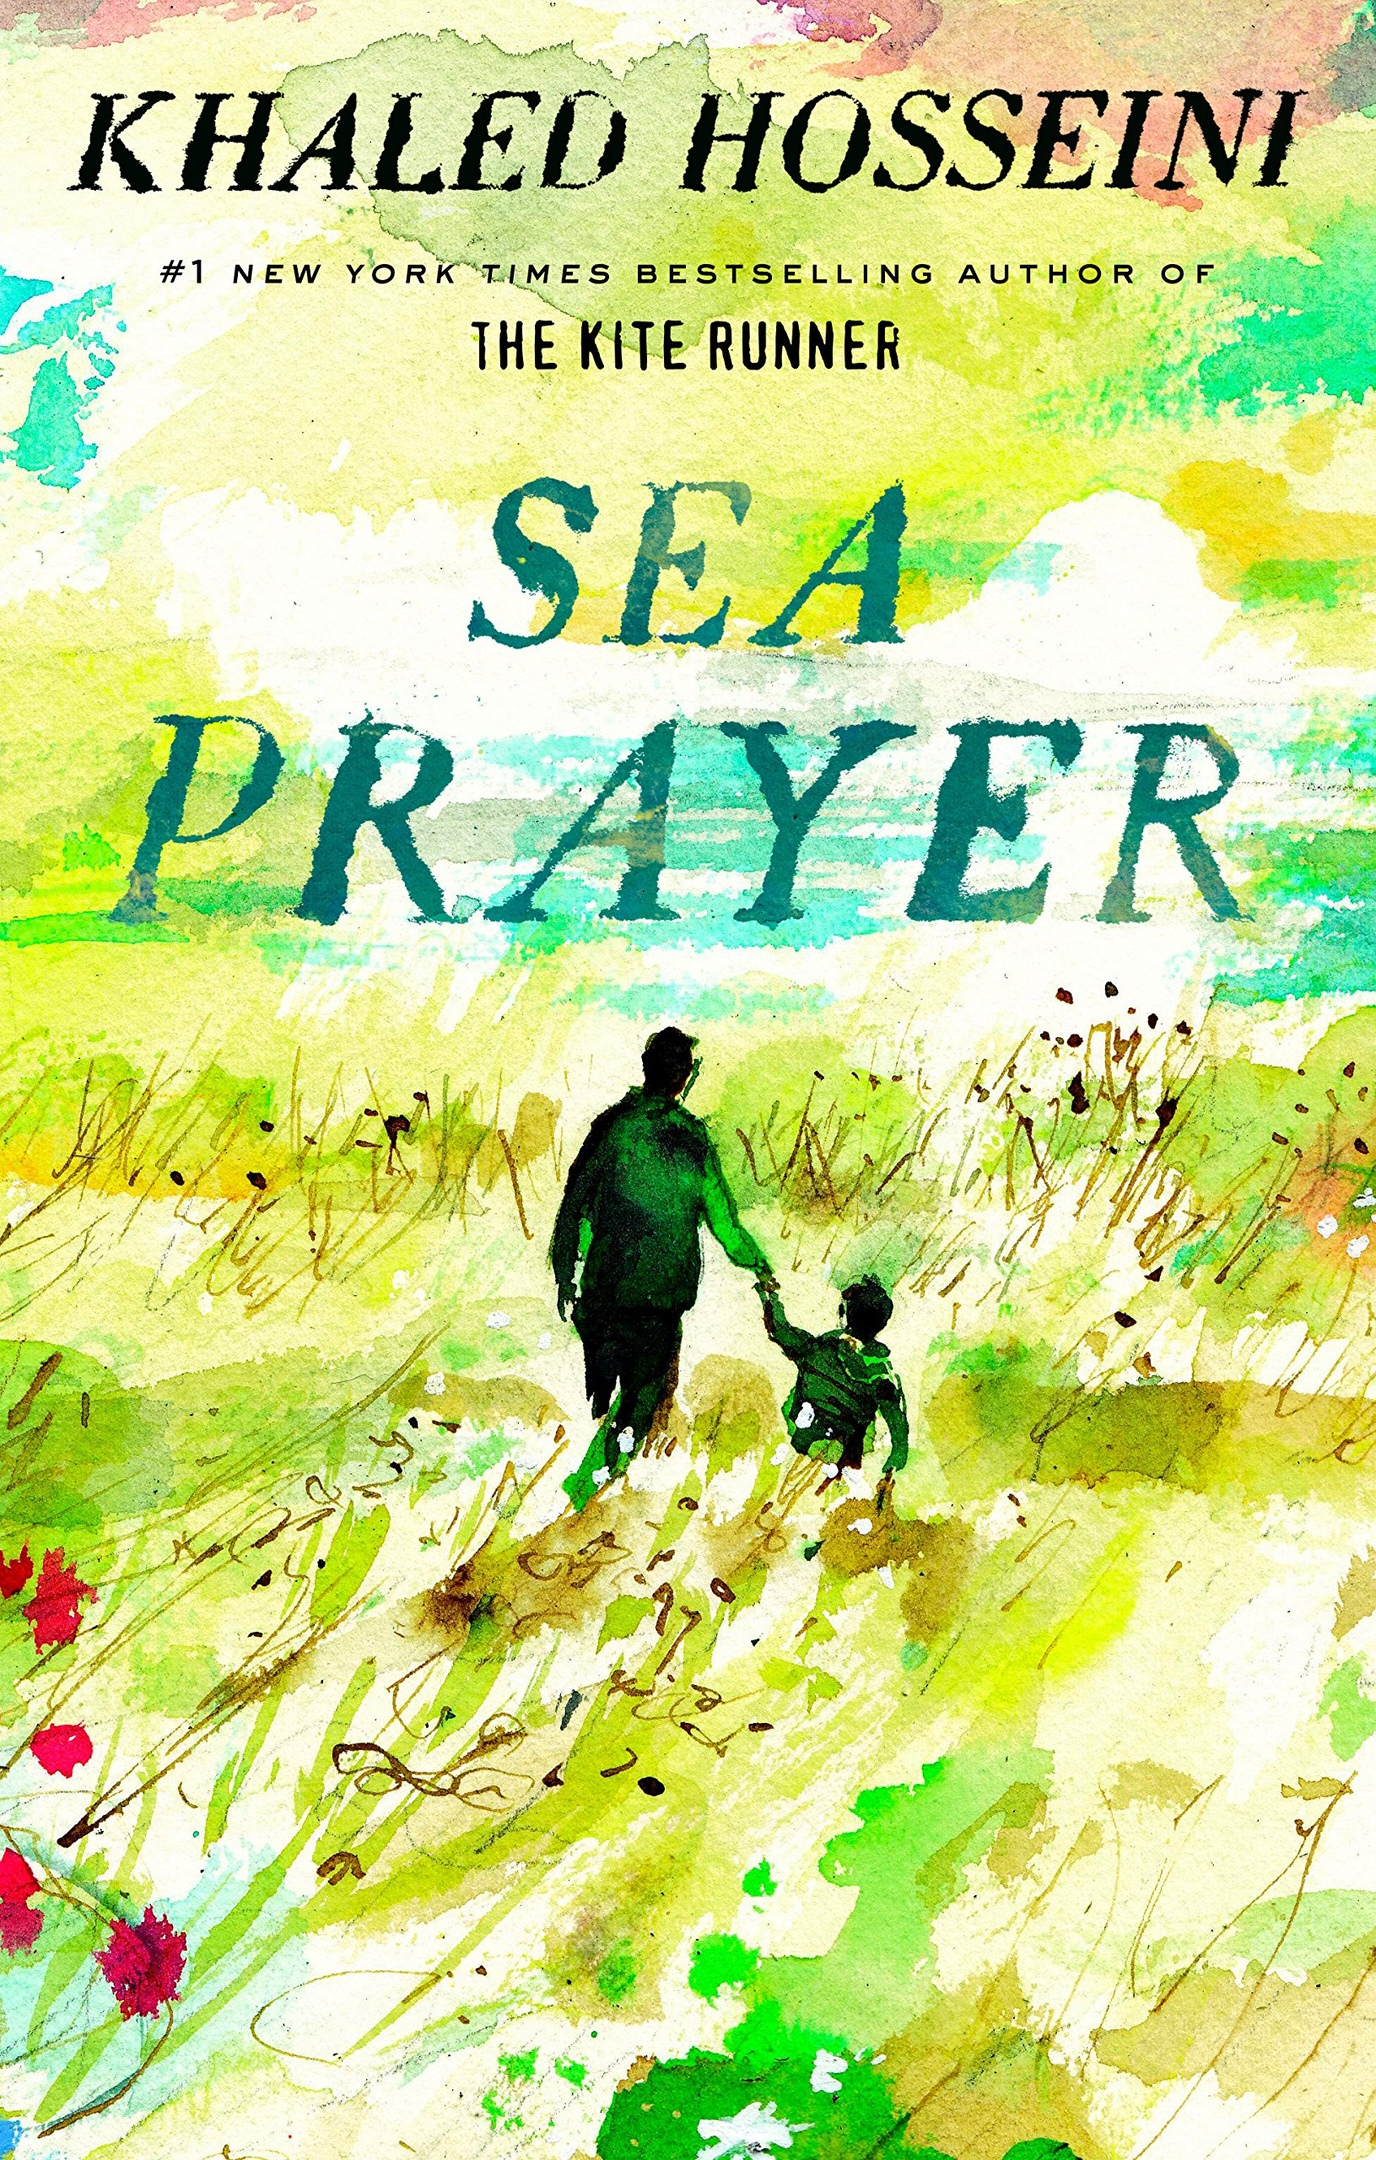 Khaled Hosseini – Sea Prayer